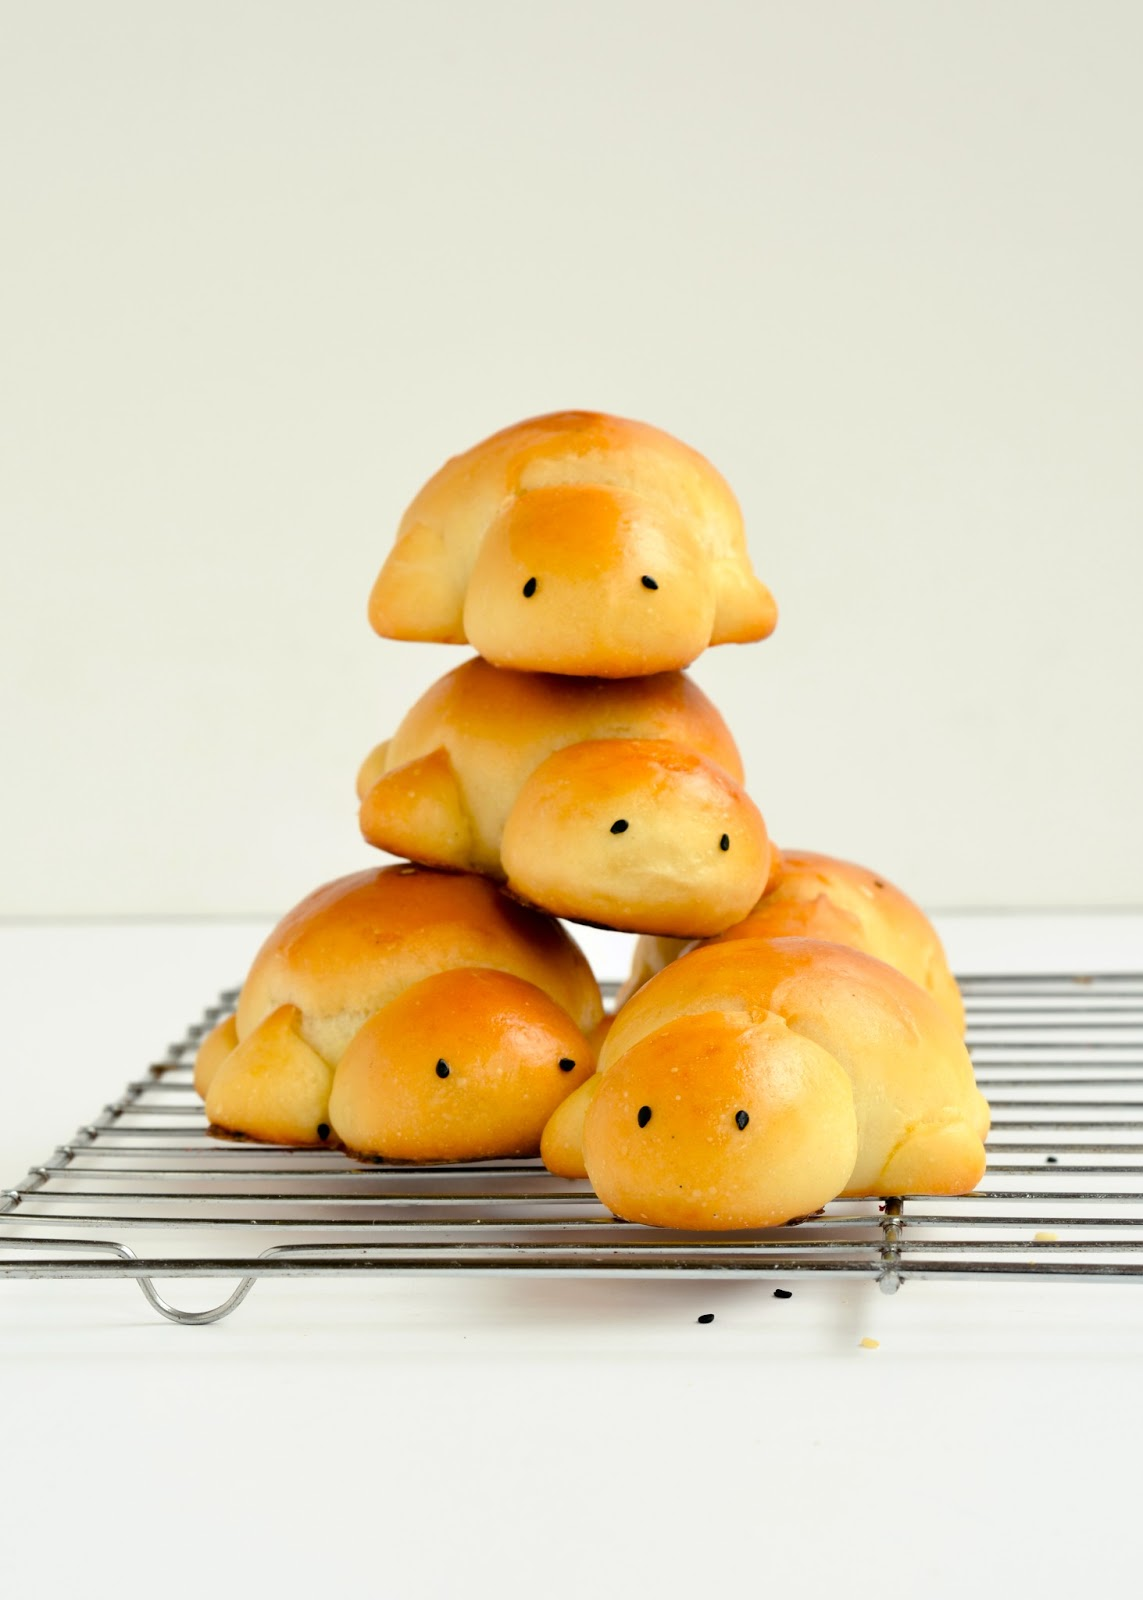 ... Lunch hall foods/-/ Sweet milk turtle bread | The moonblush Baker